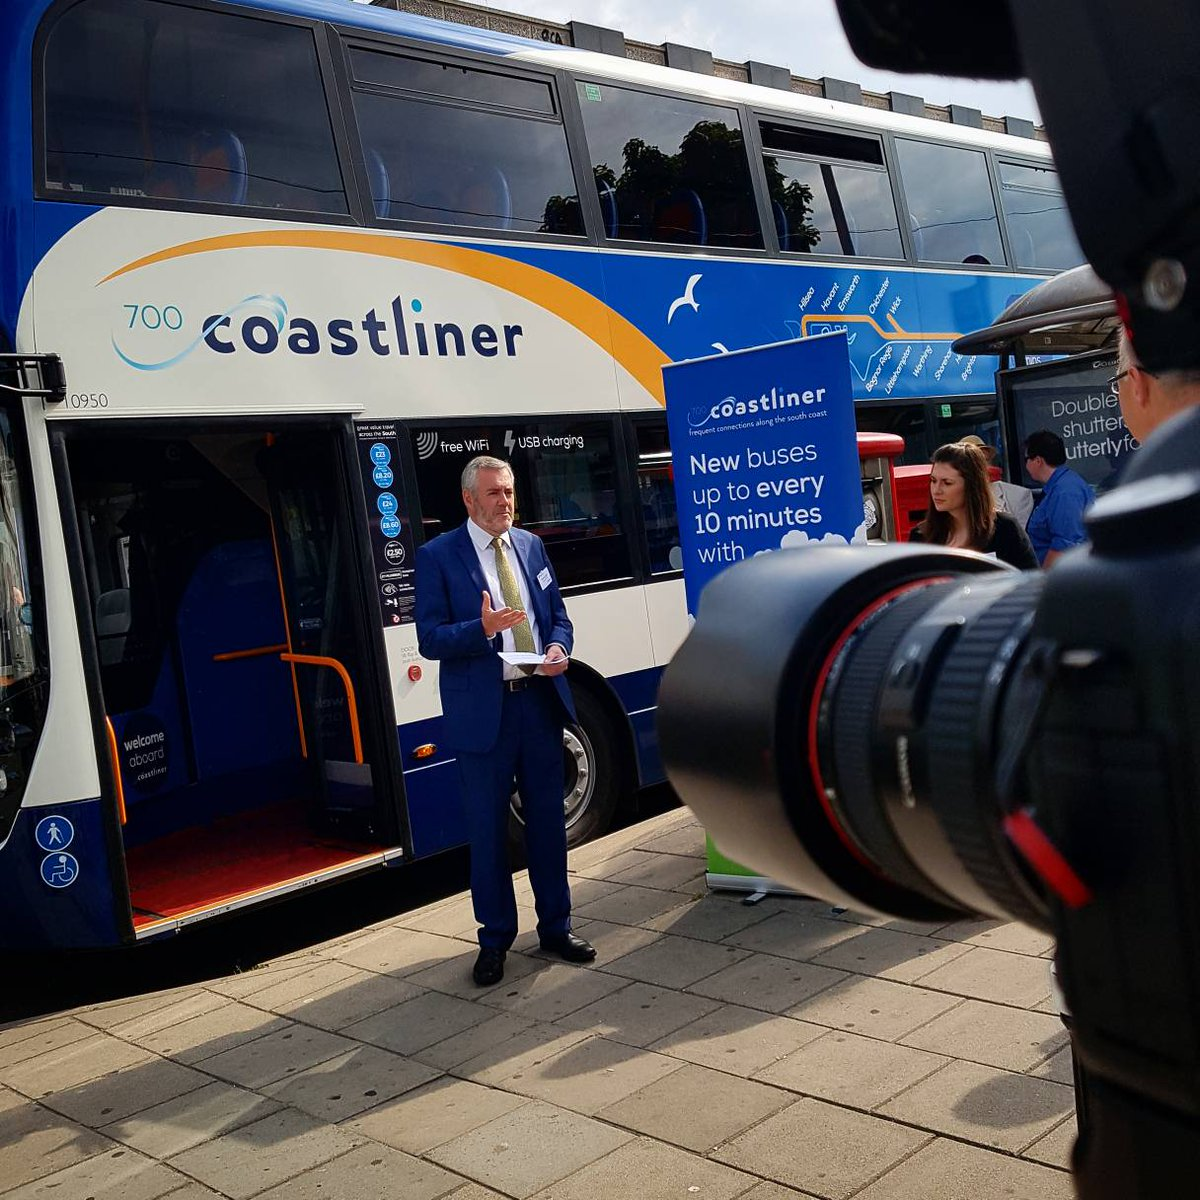 We Are Currently In Brighton City Centre Launching Our Latest Fleet Of 30 Brand New Buses For Coastliner 700 Featuring Free Wifi USB